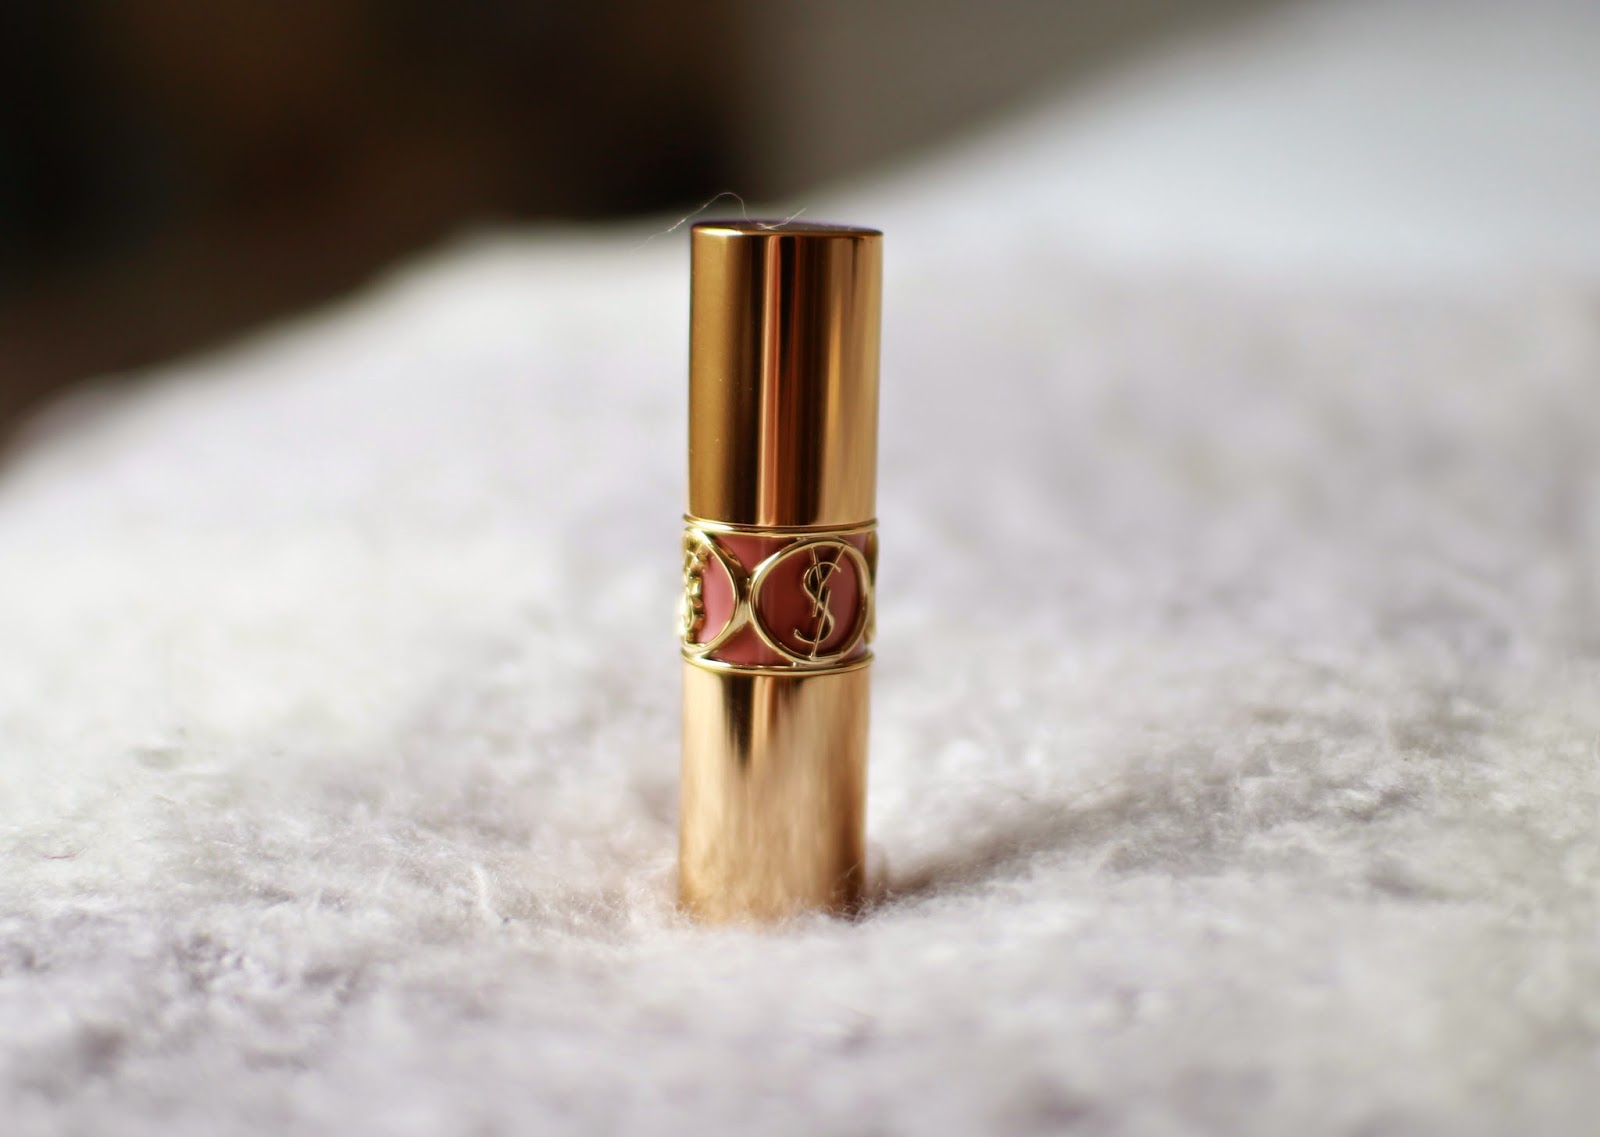 YSL Rouge Volupte in Nude Beige